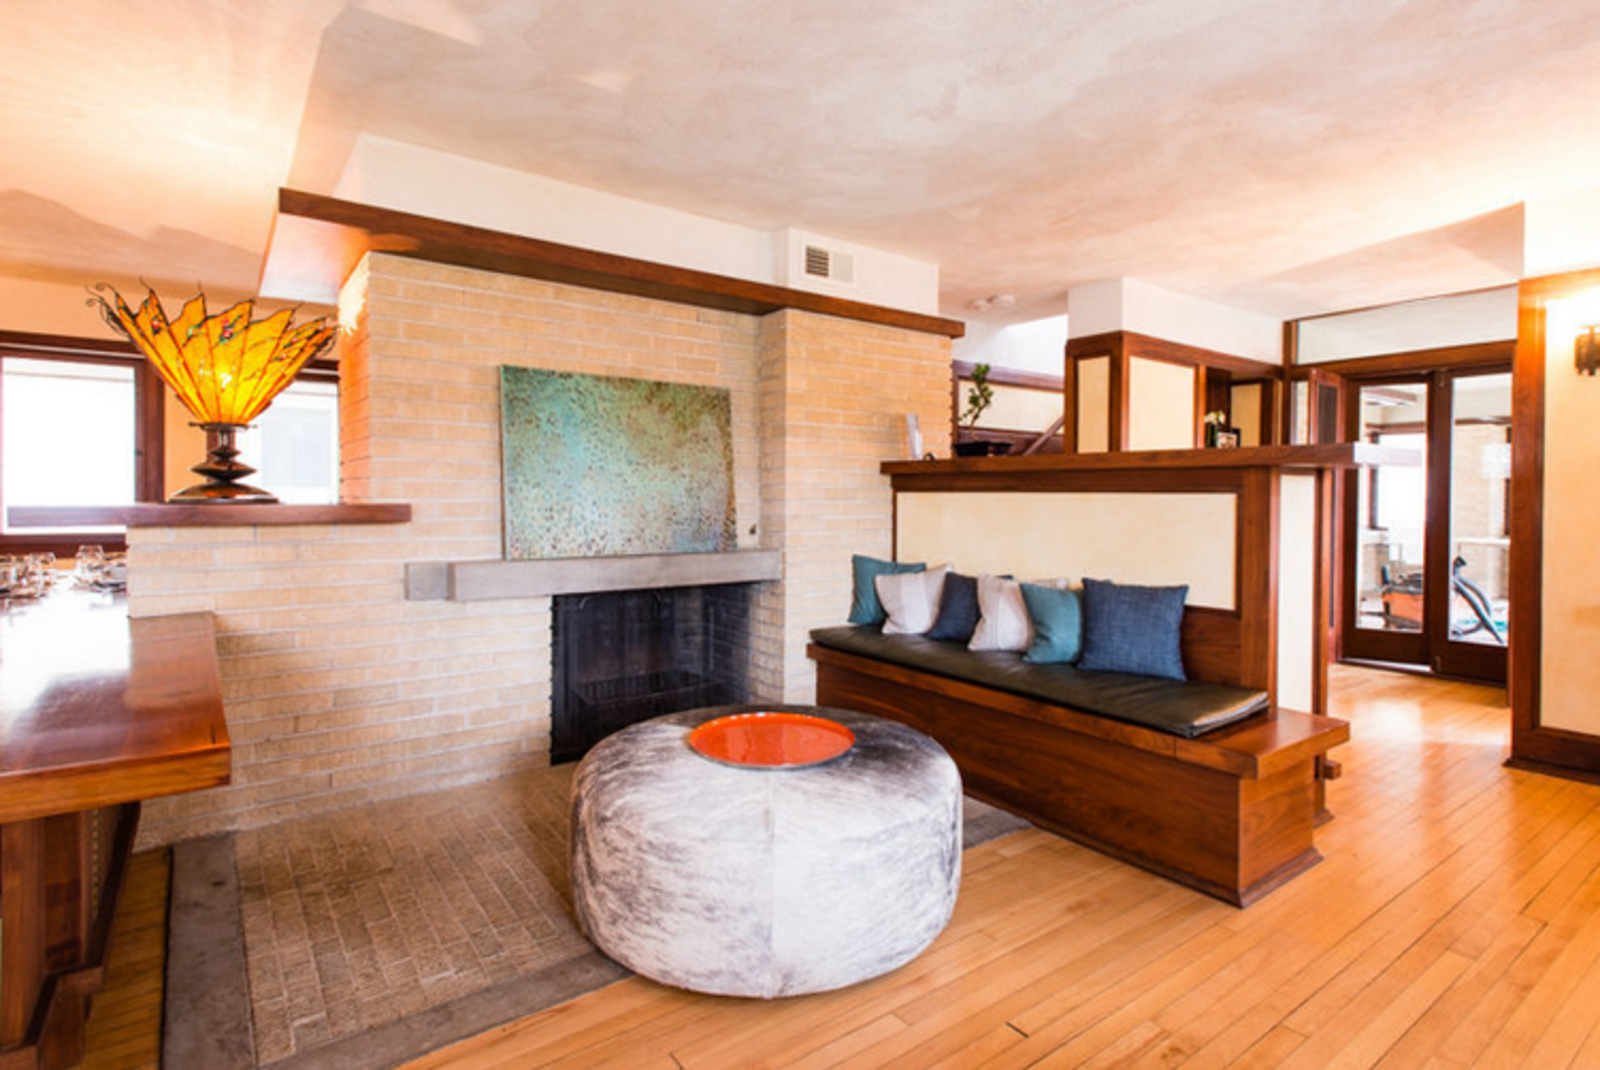 After a two year long renovation, the Frank Lloyd Wright's Emil Bach House will soon be open to the public. Curbed Chicago took a full tour of the thoughtful renovation. Photo by Nicholas James  Mid Modern by Jonathan Simcoe from Links We Love May 2, 2014